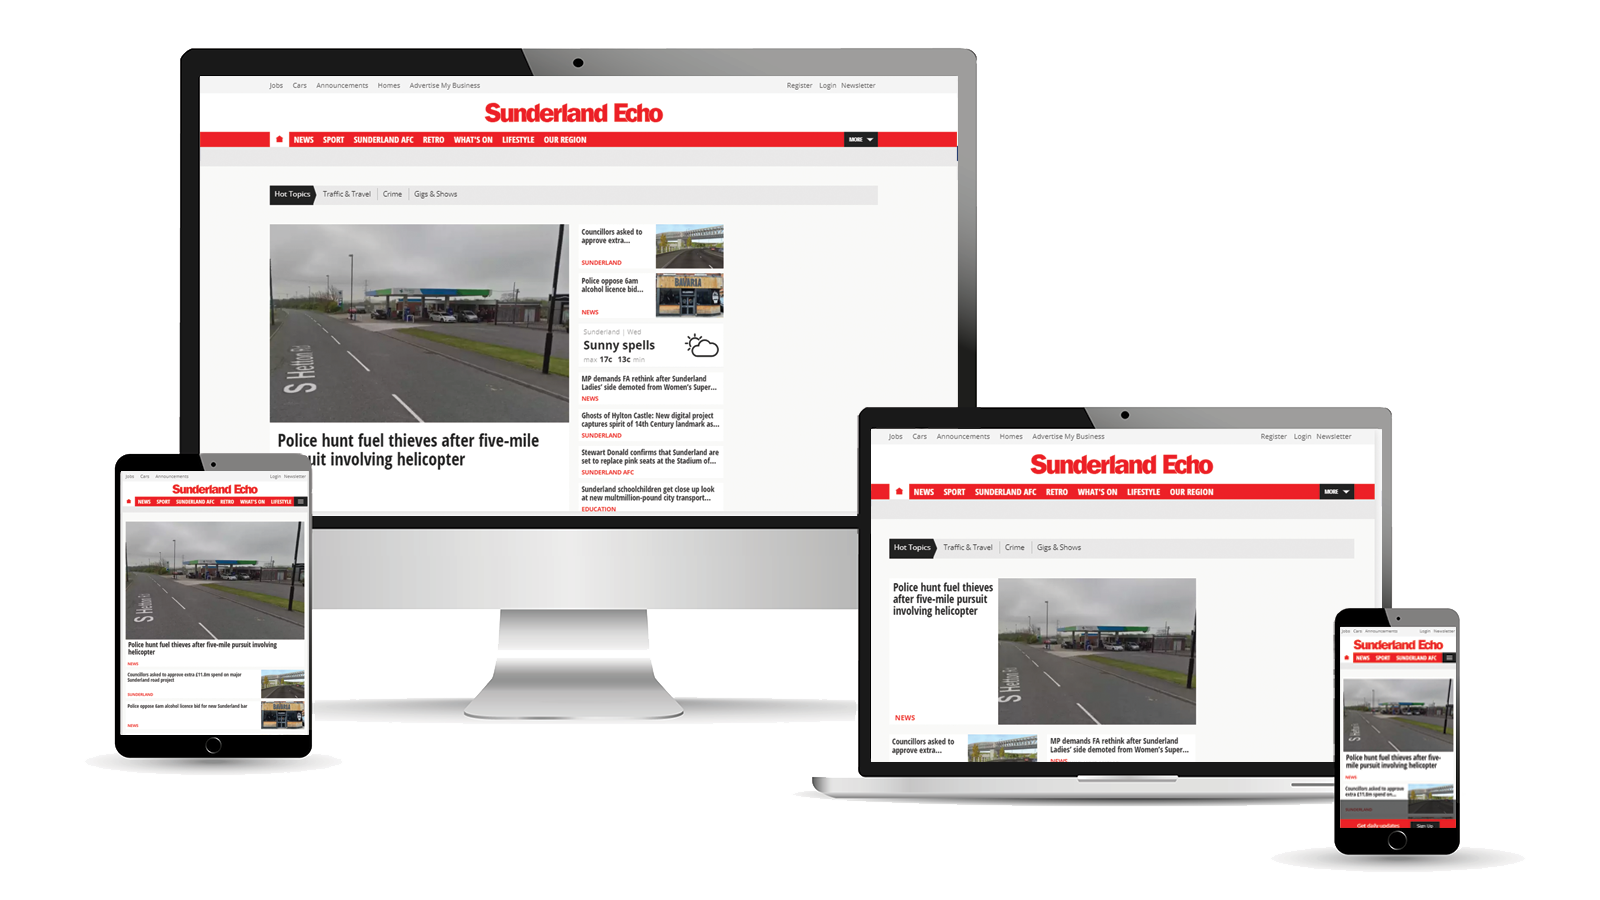 Advertise across desktop, tablet and mobile with the Sunderland Echo